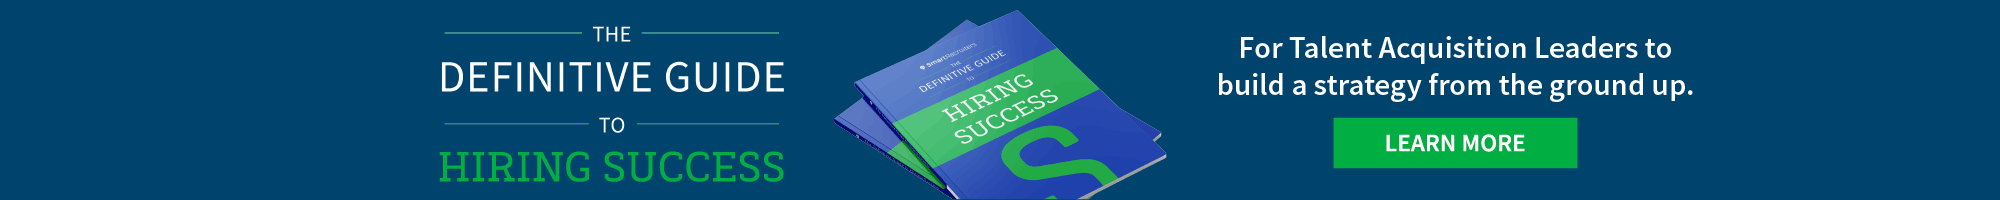 The Definitive Guide to Hiring Success